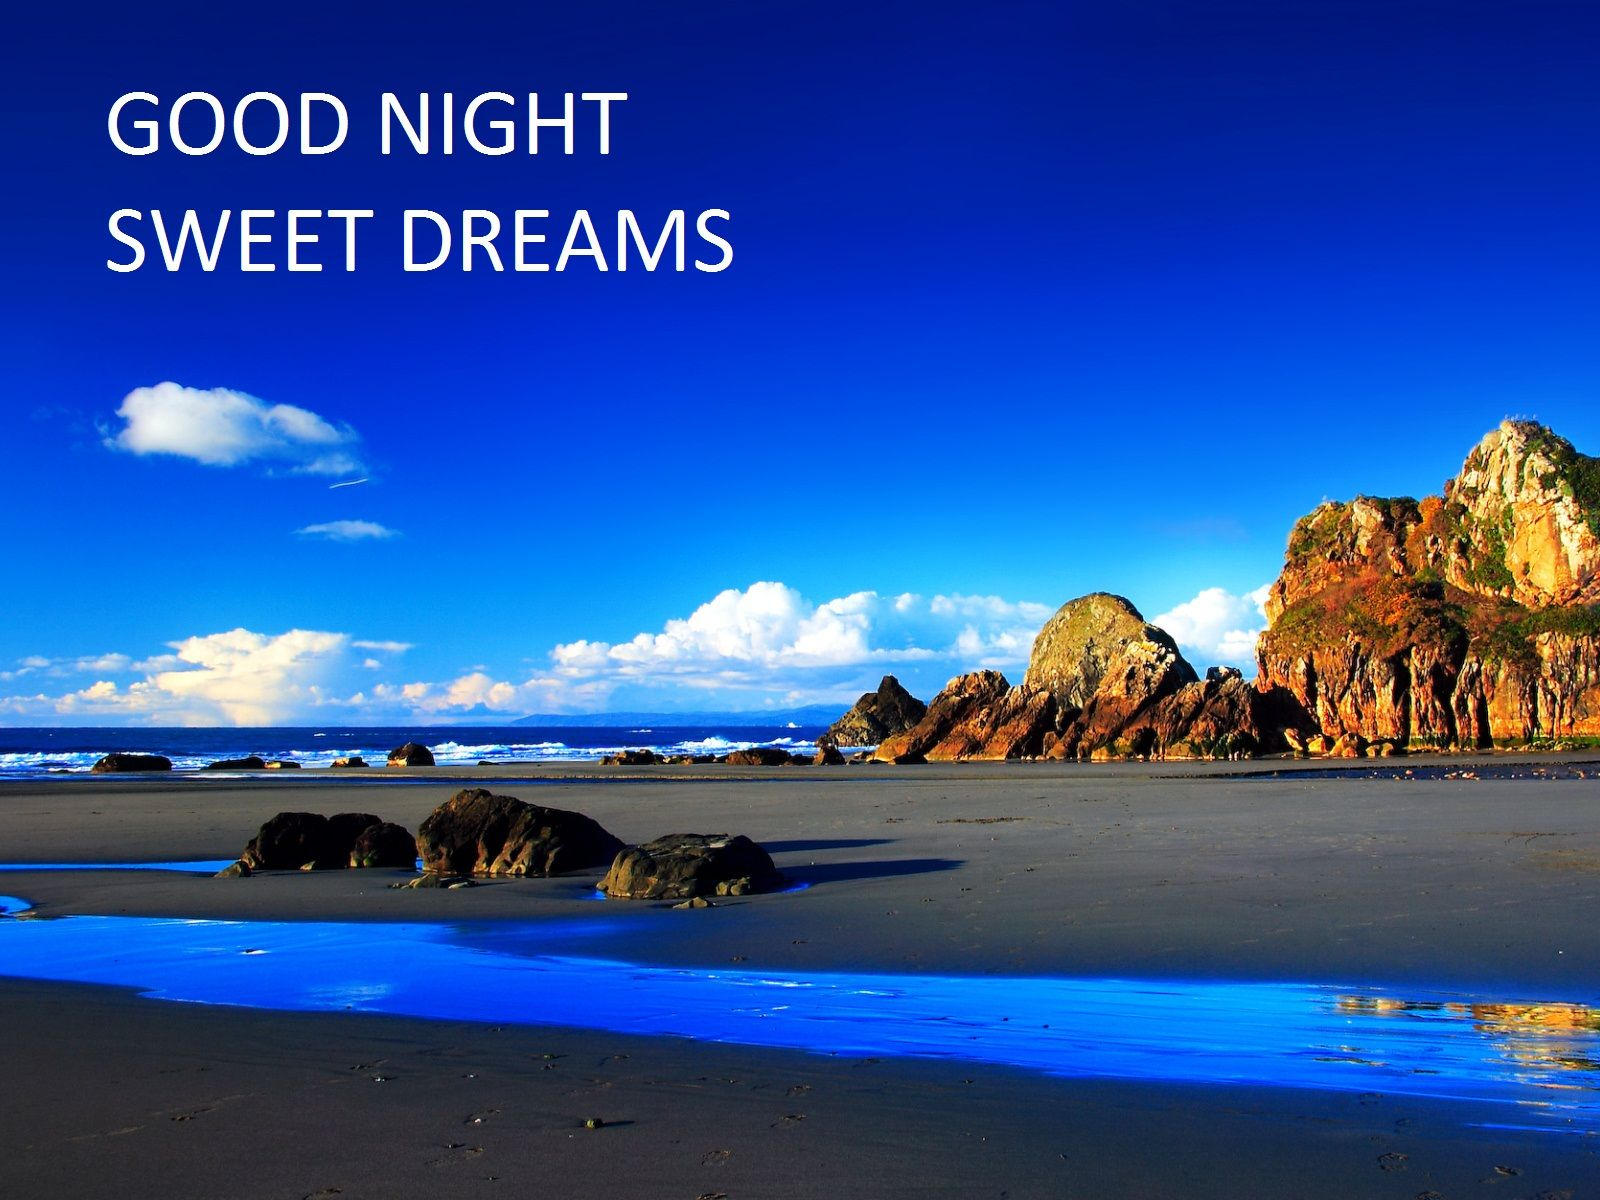 Goodnight Quotes Cute Good Night Quotes Good Night With Quotes Scenery Wallpaper Beach Scenery Nature Desktop Wallpaper